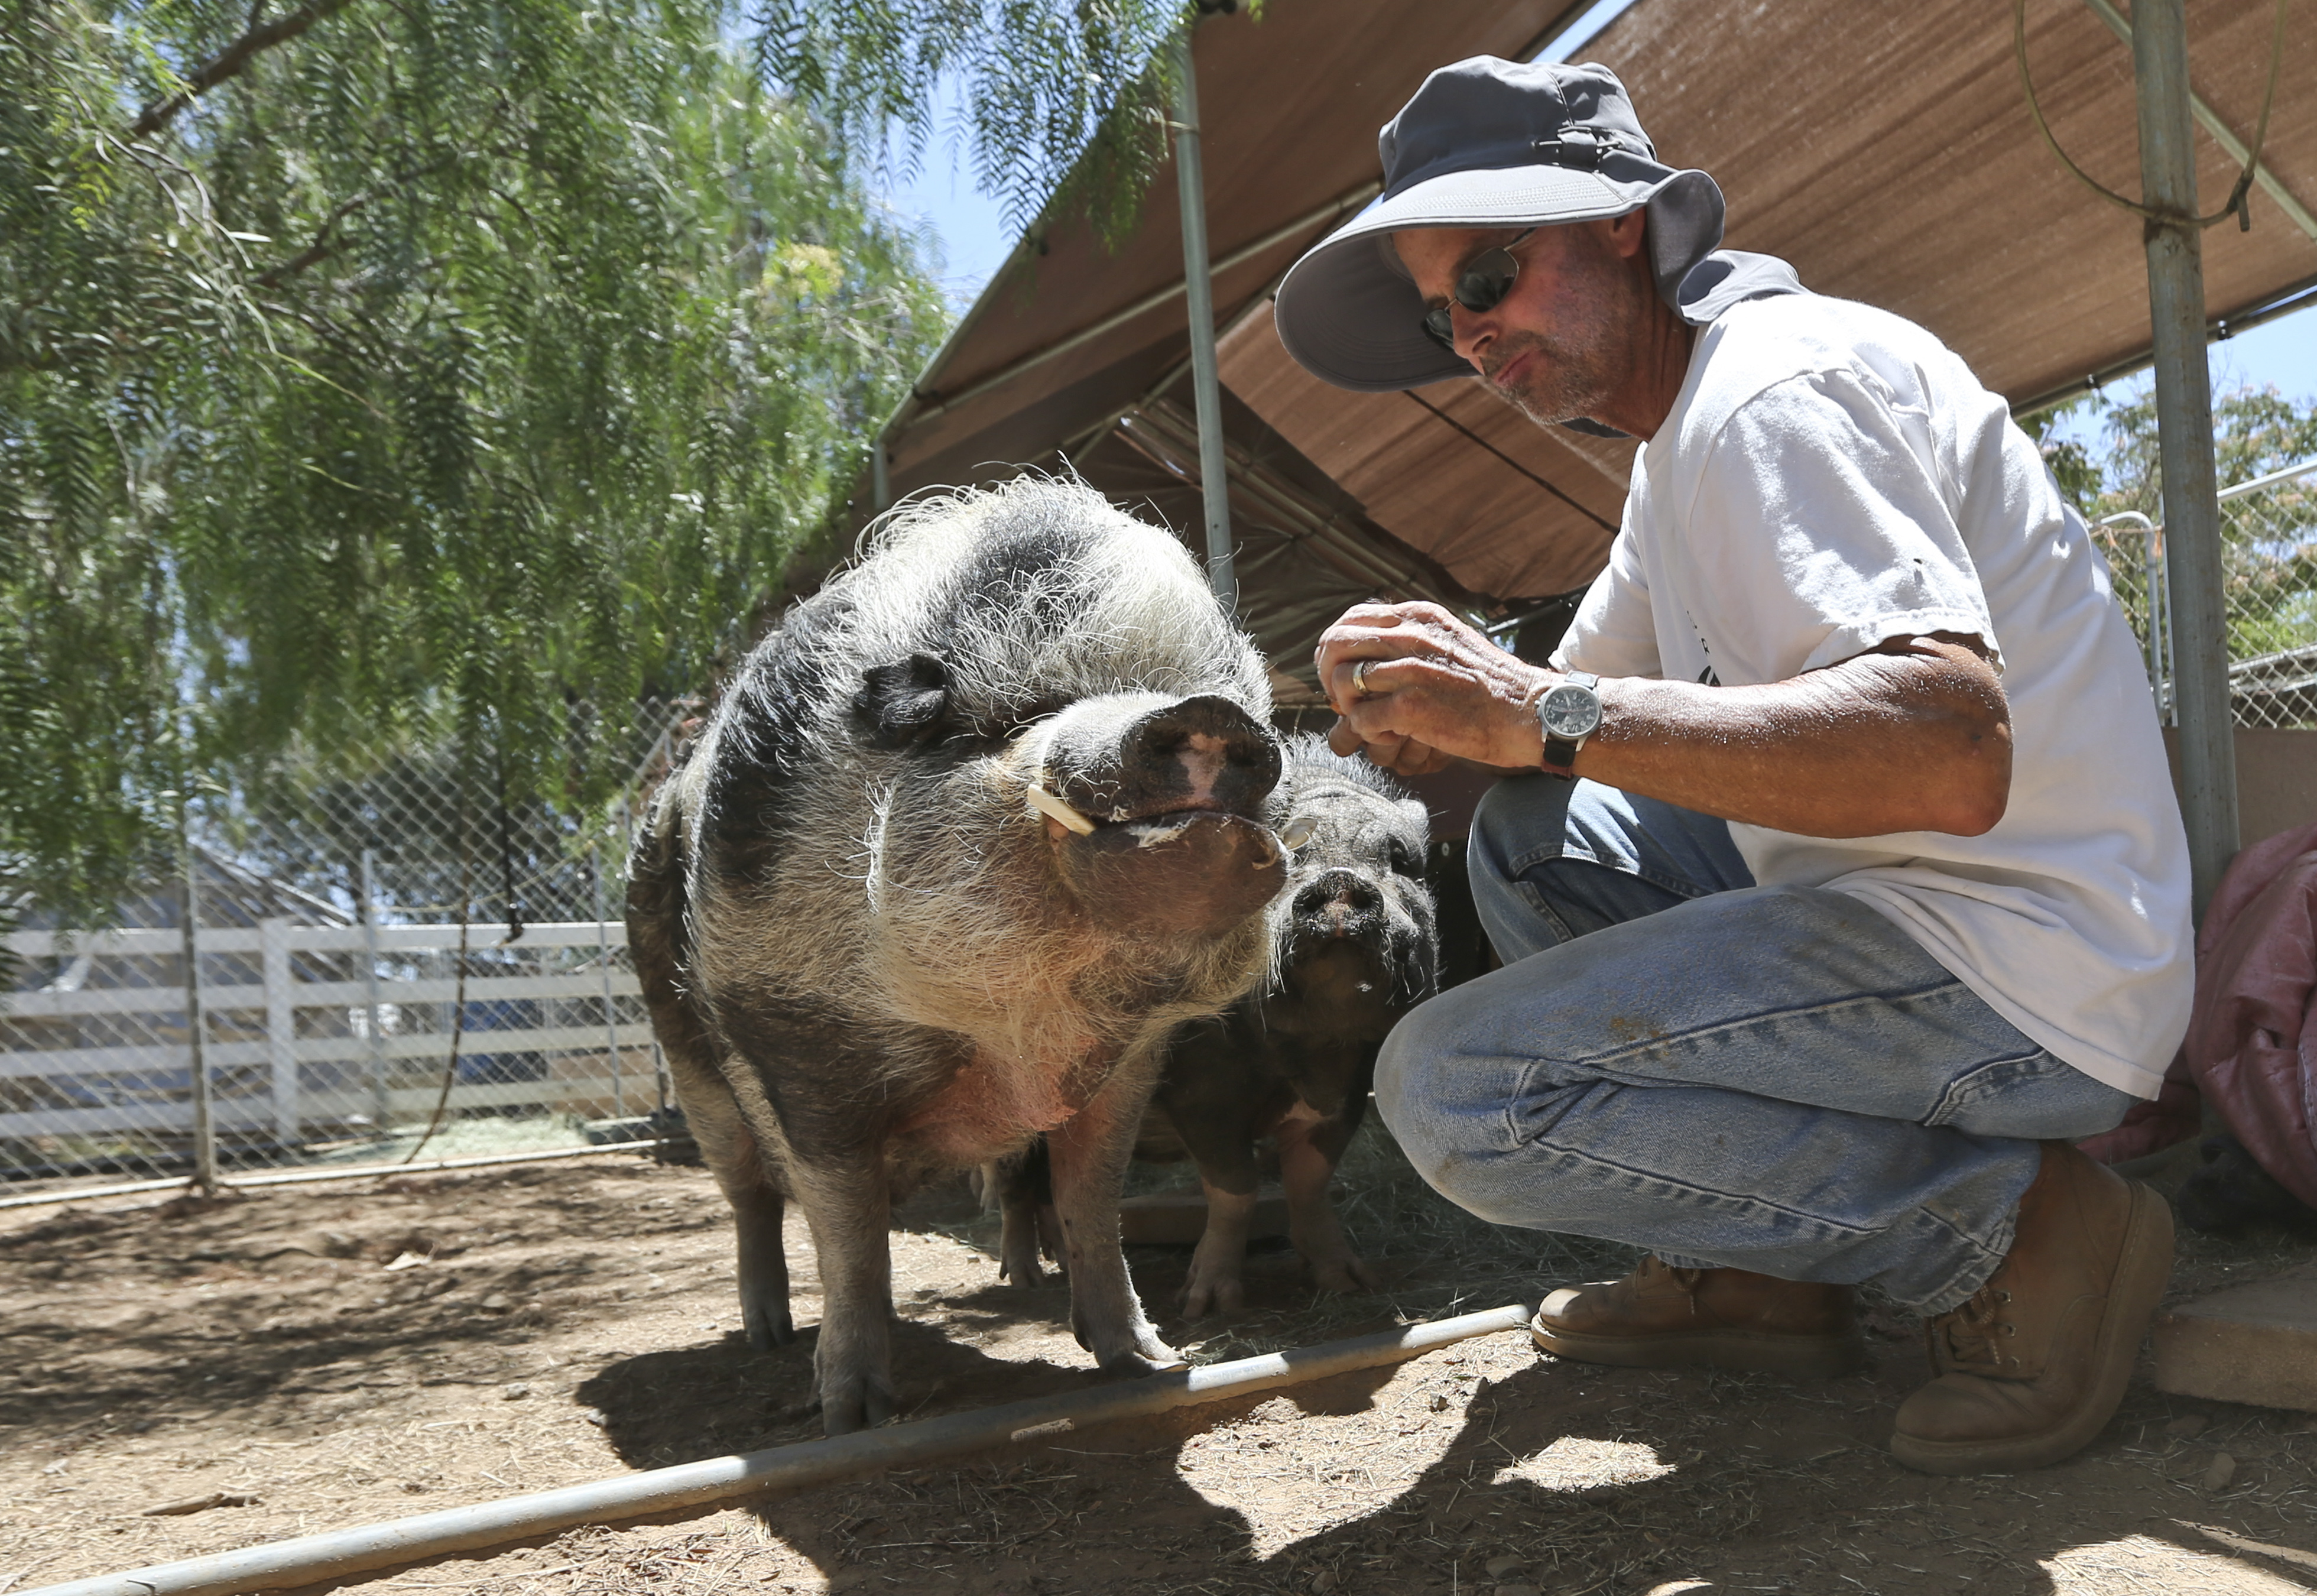 Marty Koontz, co-owner of the Grazin Pig Acres rescue ranch, feeds one of the pot-bellied pigs living on the ranch run by Koontz and his wife, Nancy Koontz, Tuesday July 14, 2015 in Ramona, Calif. The ranch is home to 98 pot bellied pigs that have been rescued by Nancy and Marty Koontz, The craze for tiny pet pigs started decades ago and gets reignited every few years. Once they grow too big to handle, people give them up.  (AP Photo/Lenny Ignelzi)